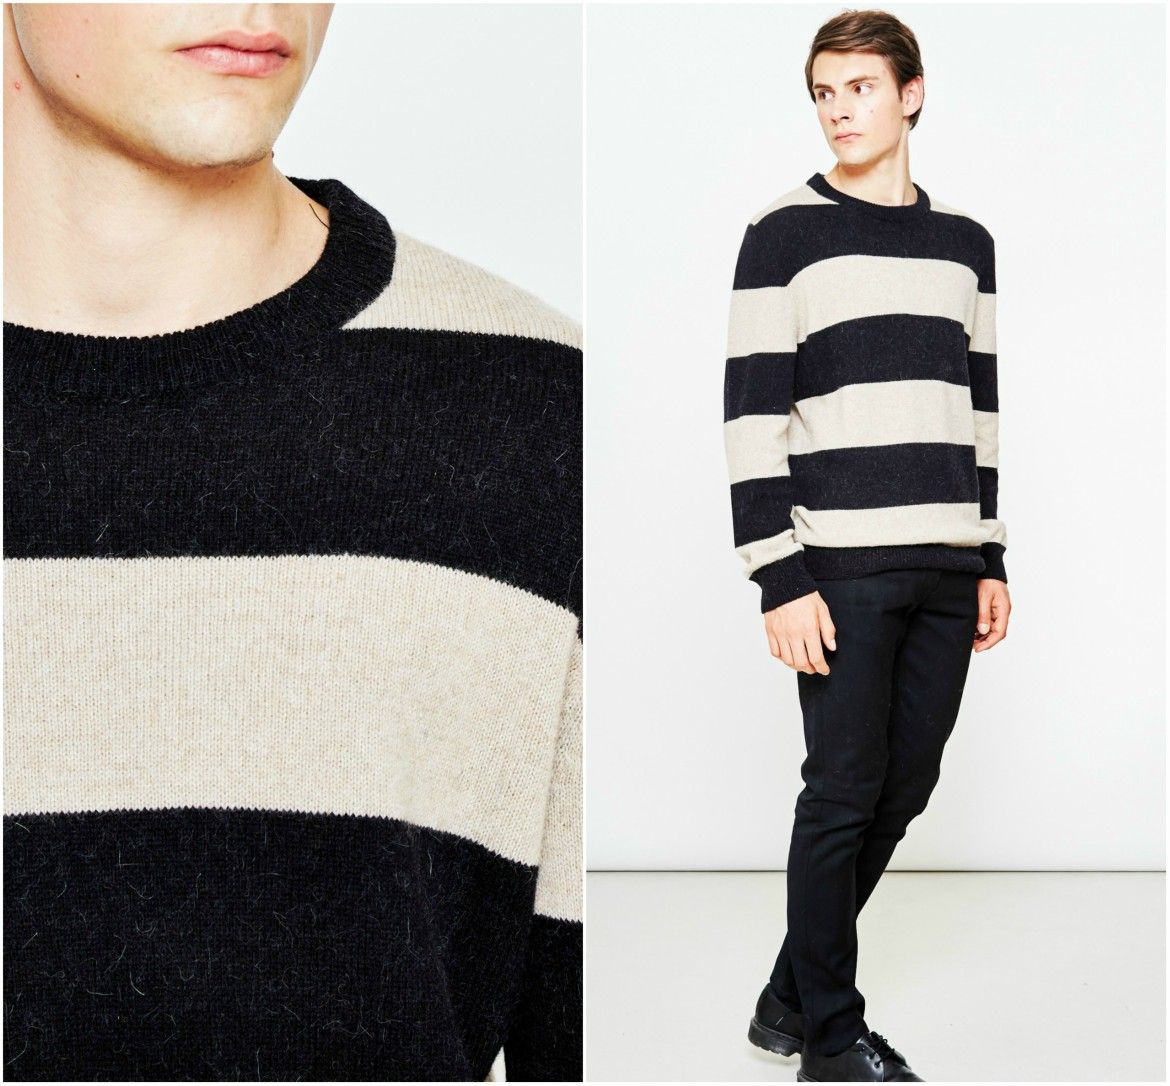 YMC Jumper  | Shop now at The Idle Man | #StyleMadeEasy